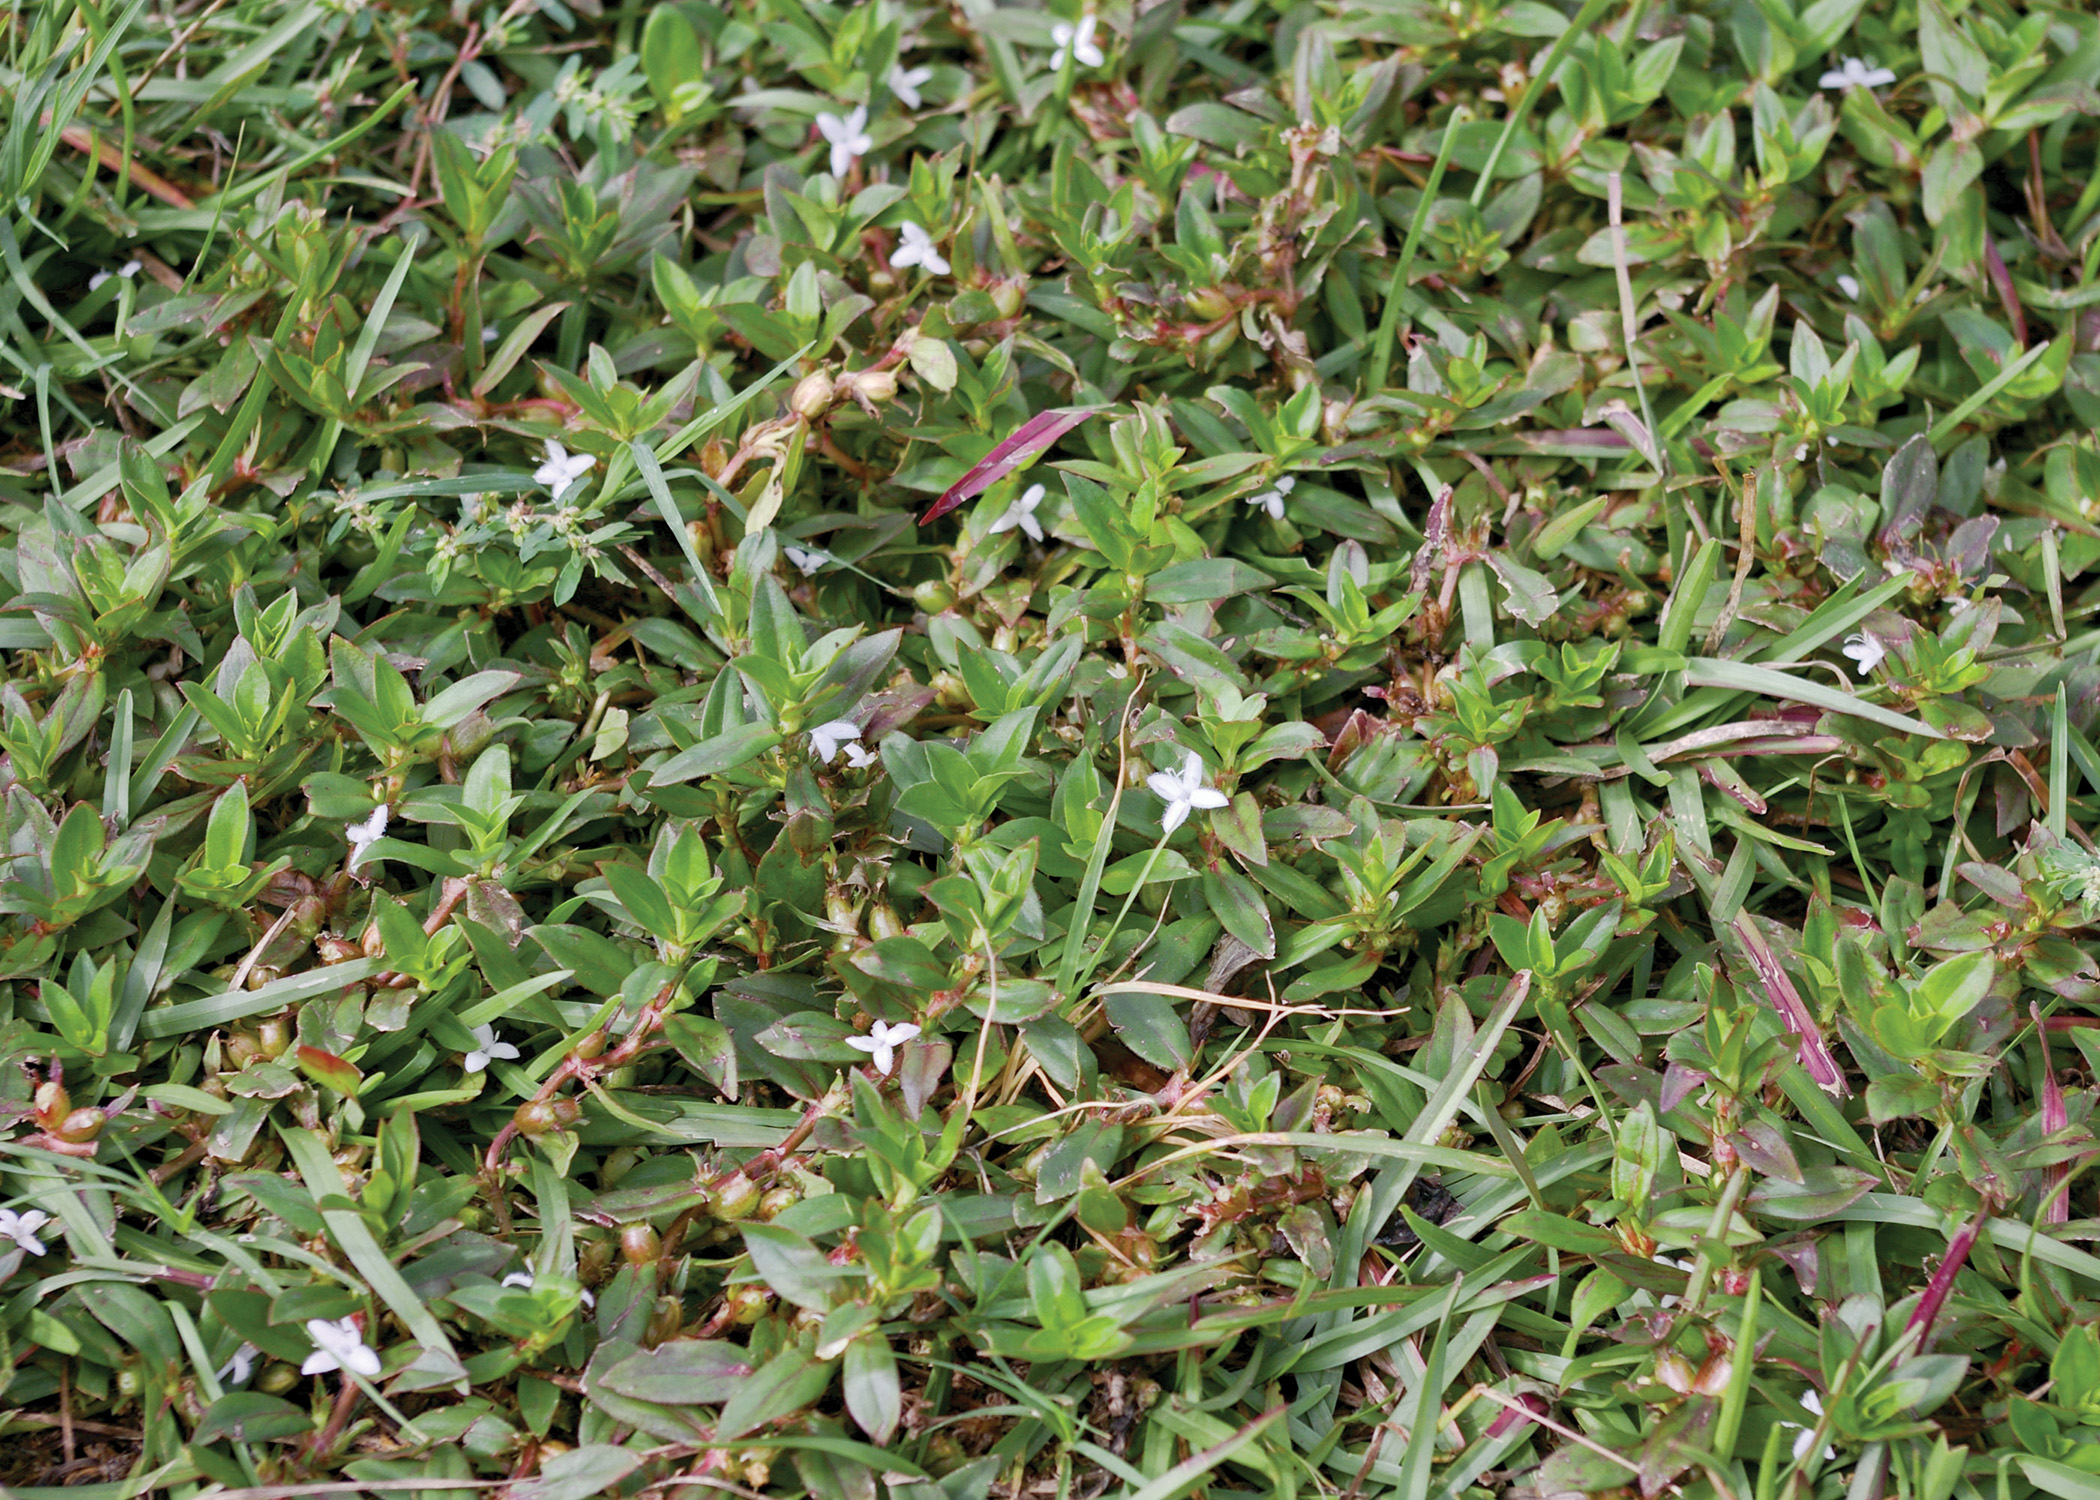 Virginia Buttonweed: No. 1 Weed Problem of Southern Lawns